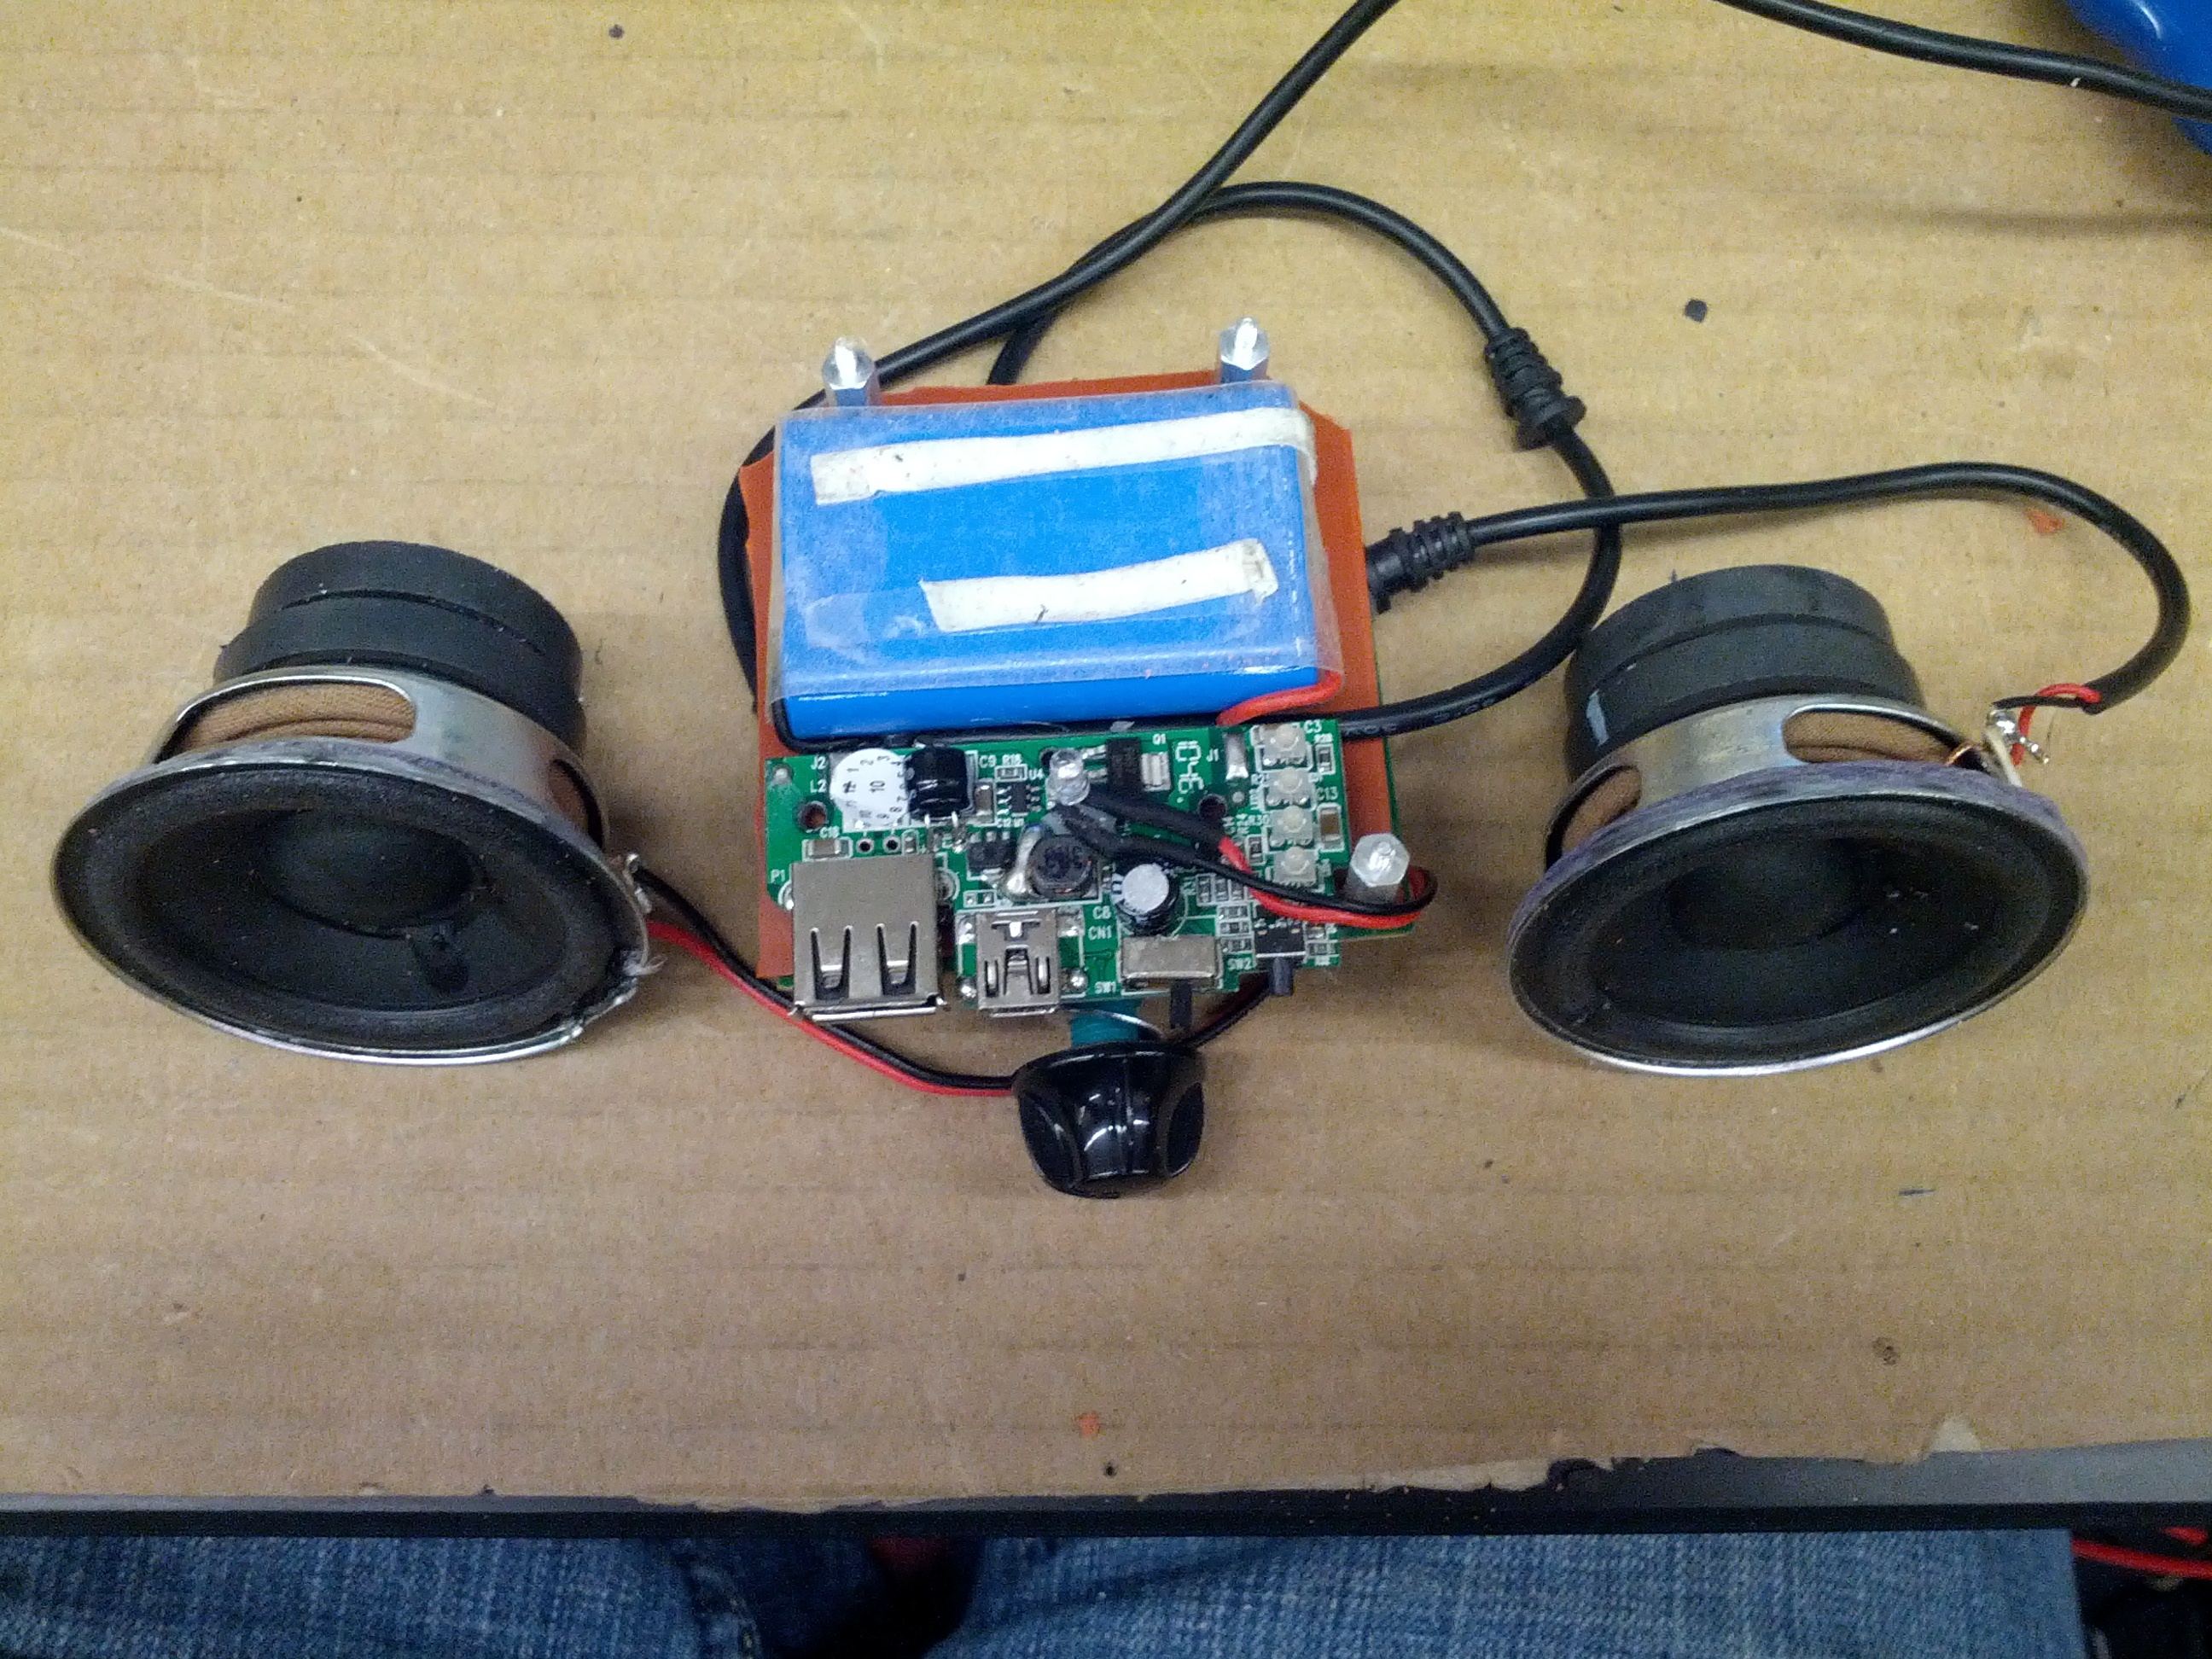 Picture of Measure Components and Assemble Electronics